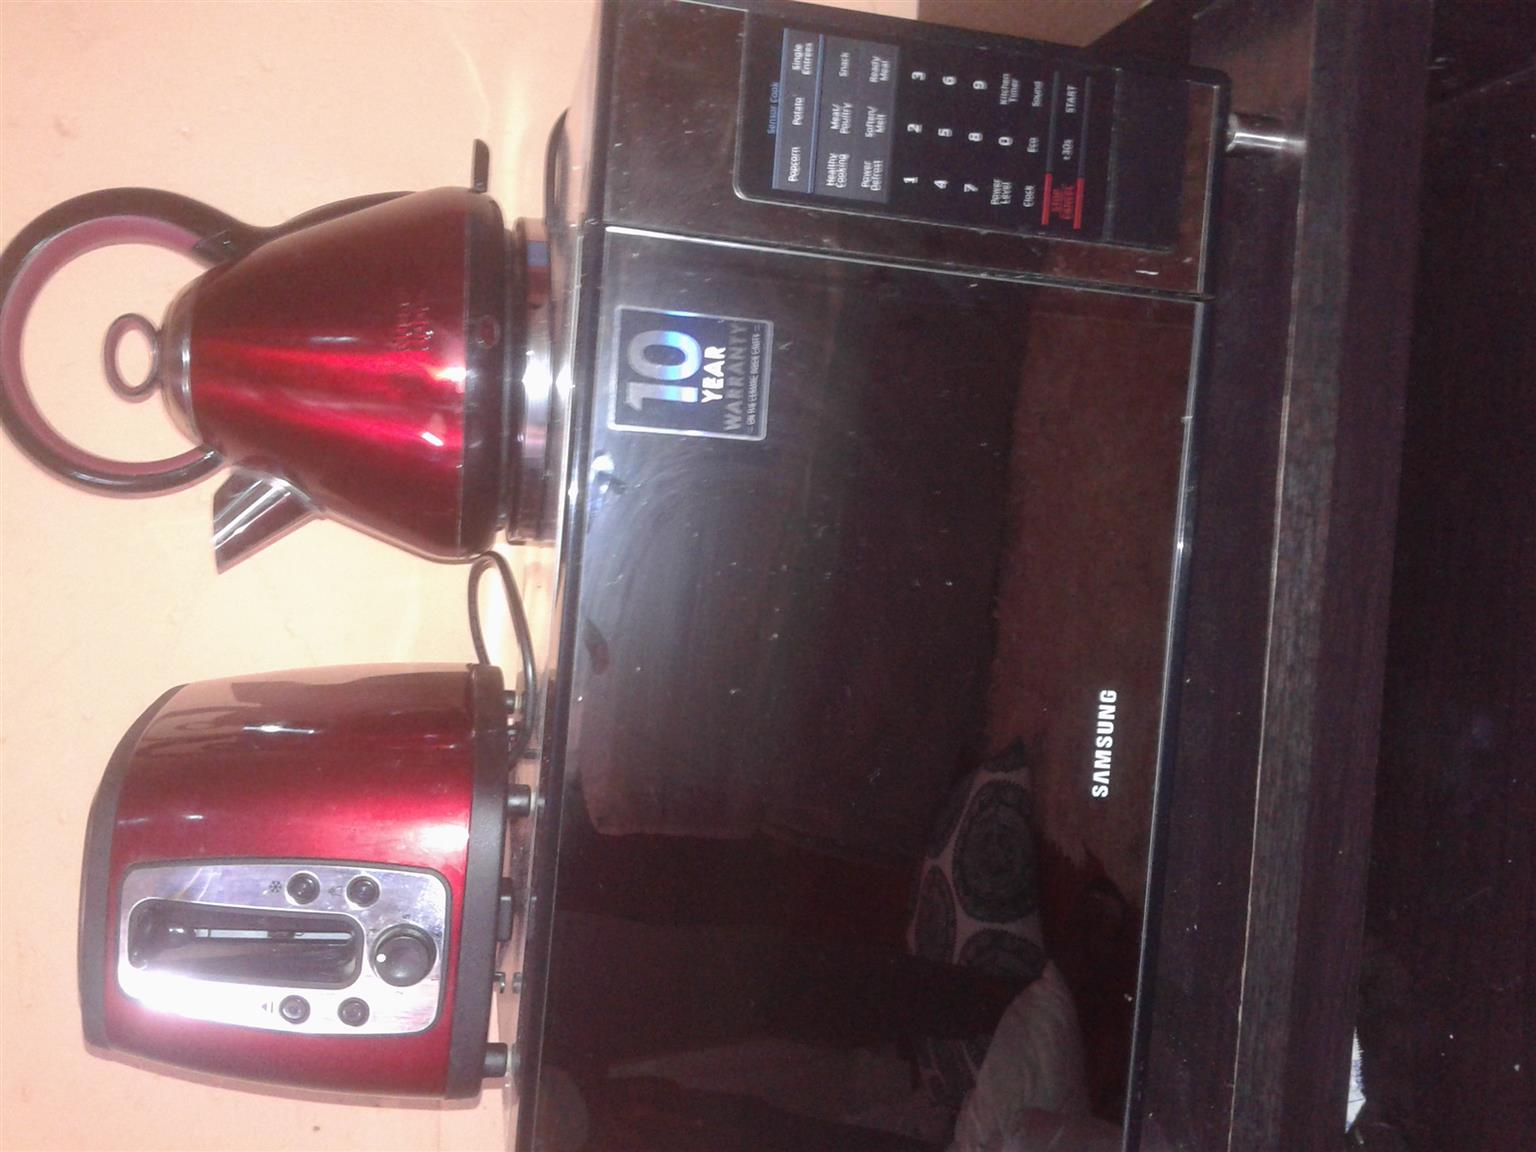 Samsung microwave with a Russell Hobbs toaster and kettle for sale